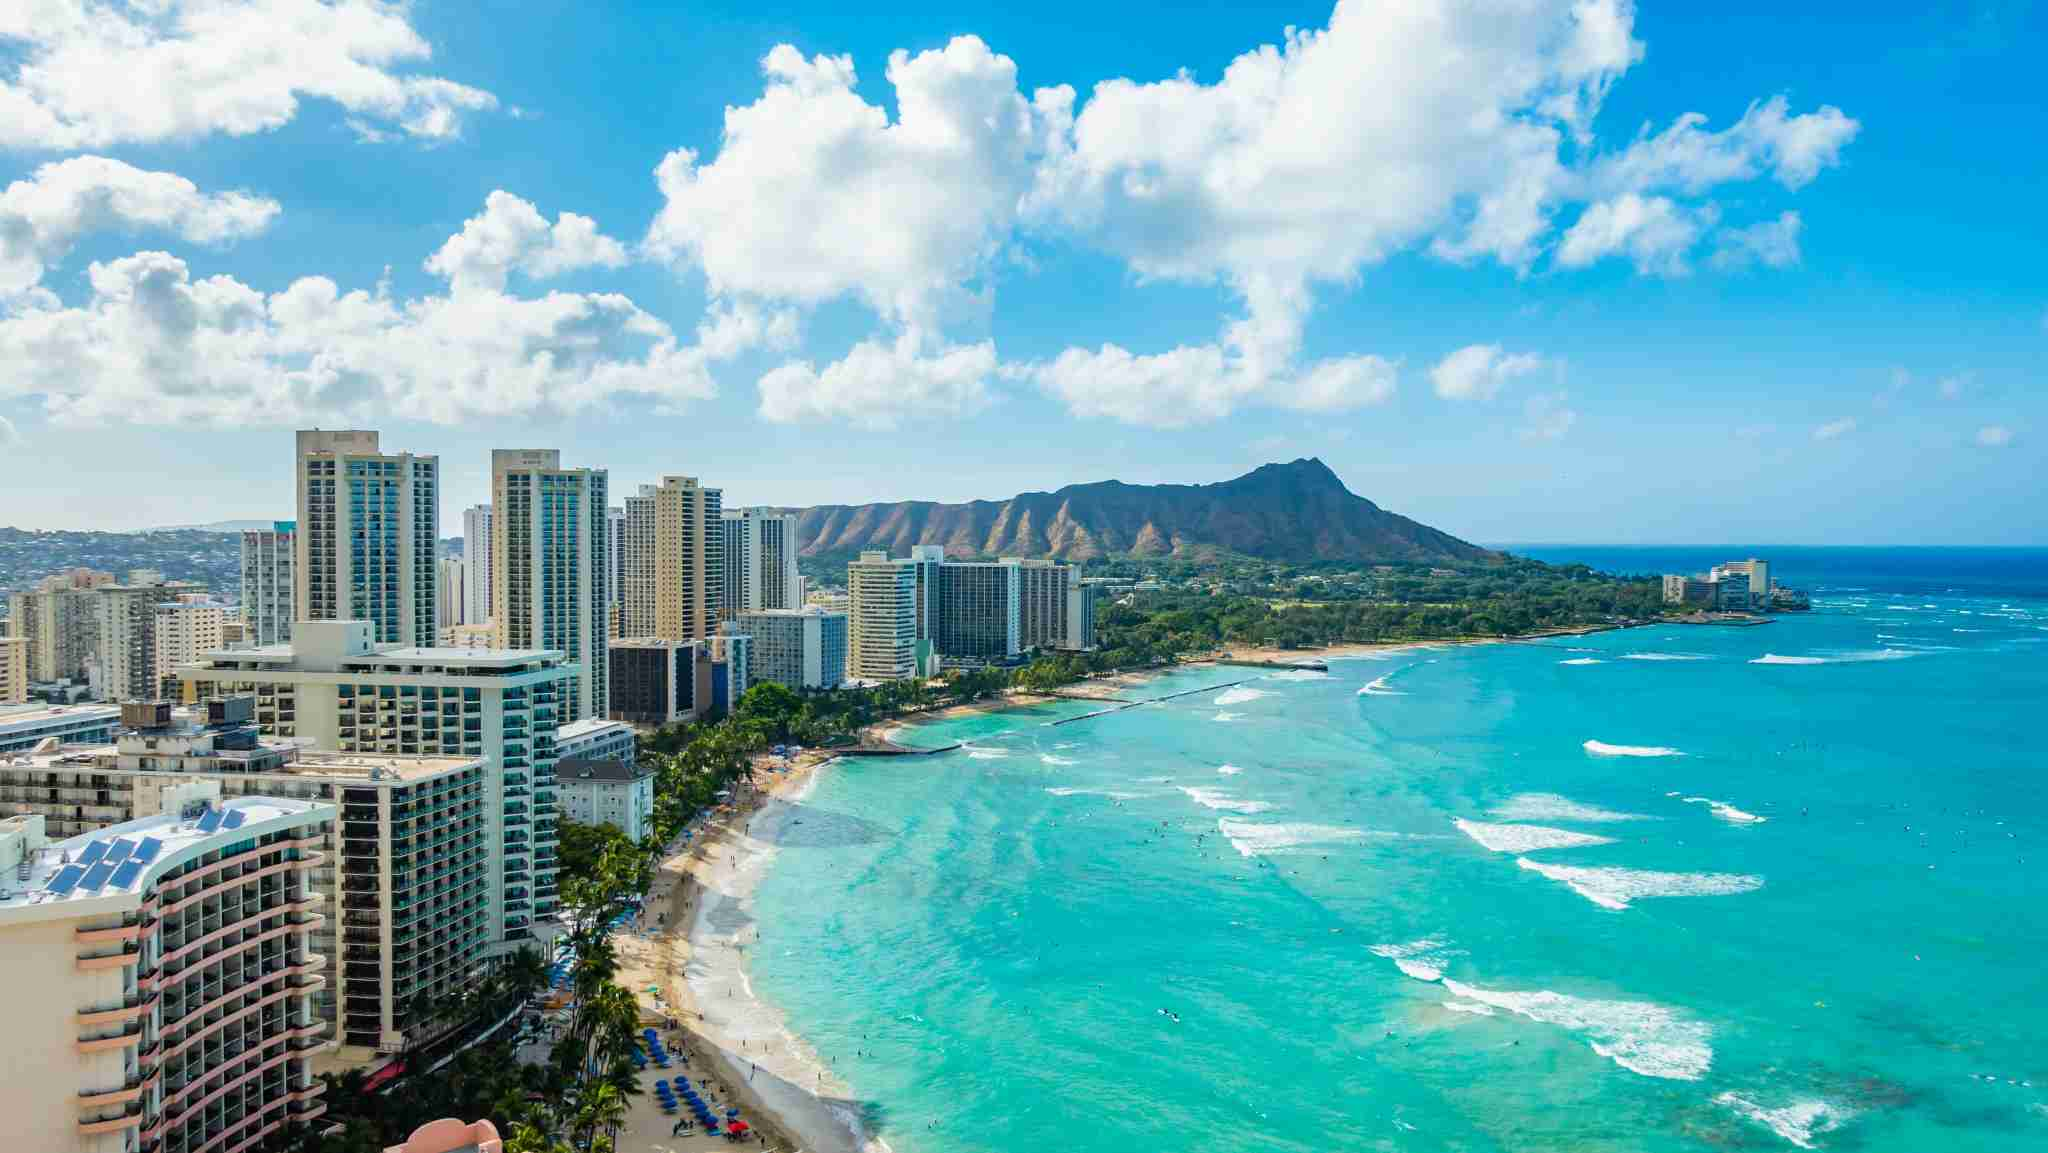 Waikiki Beach and Diamond Head Crater including the hotels and buildings in Waikiki, Honolulu, Oahu island, Hawaii. Waikiki Beach in the center of Honolulu has the largest number of visitors in Hawaii (Photo by okimo/Getty Images)